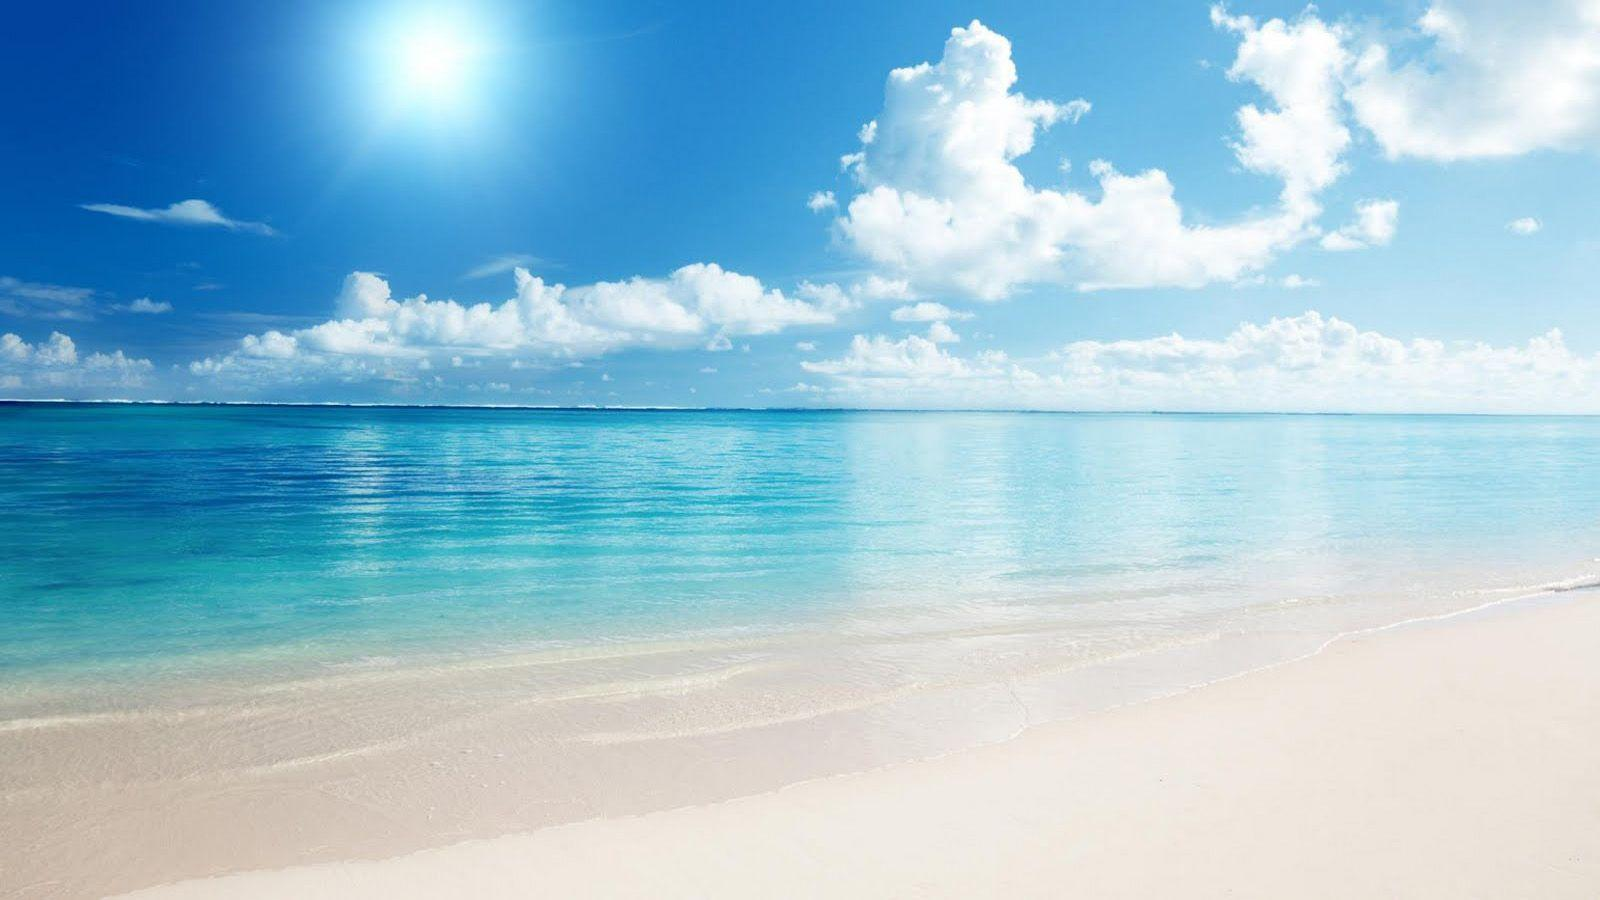 Beach Backgrounds Pictures